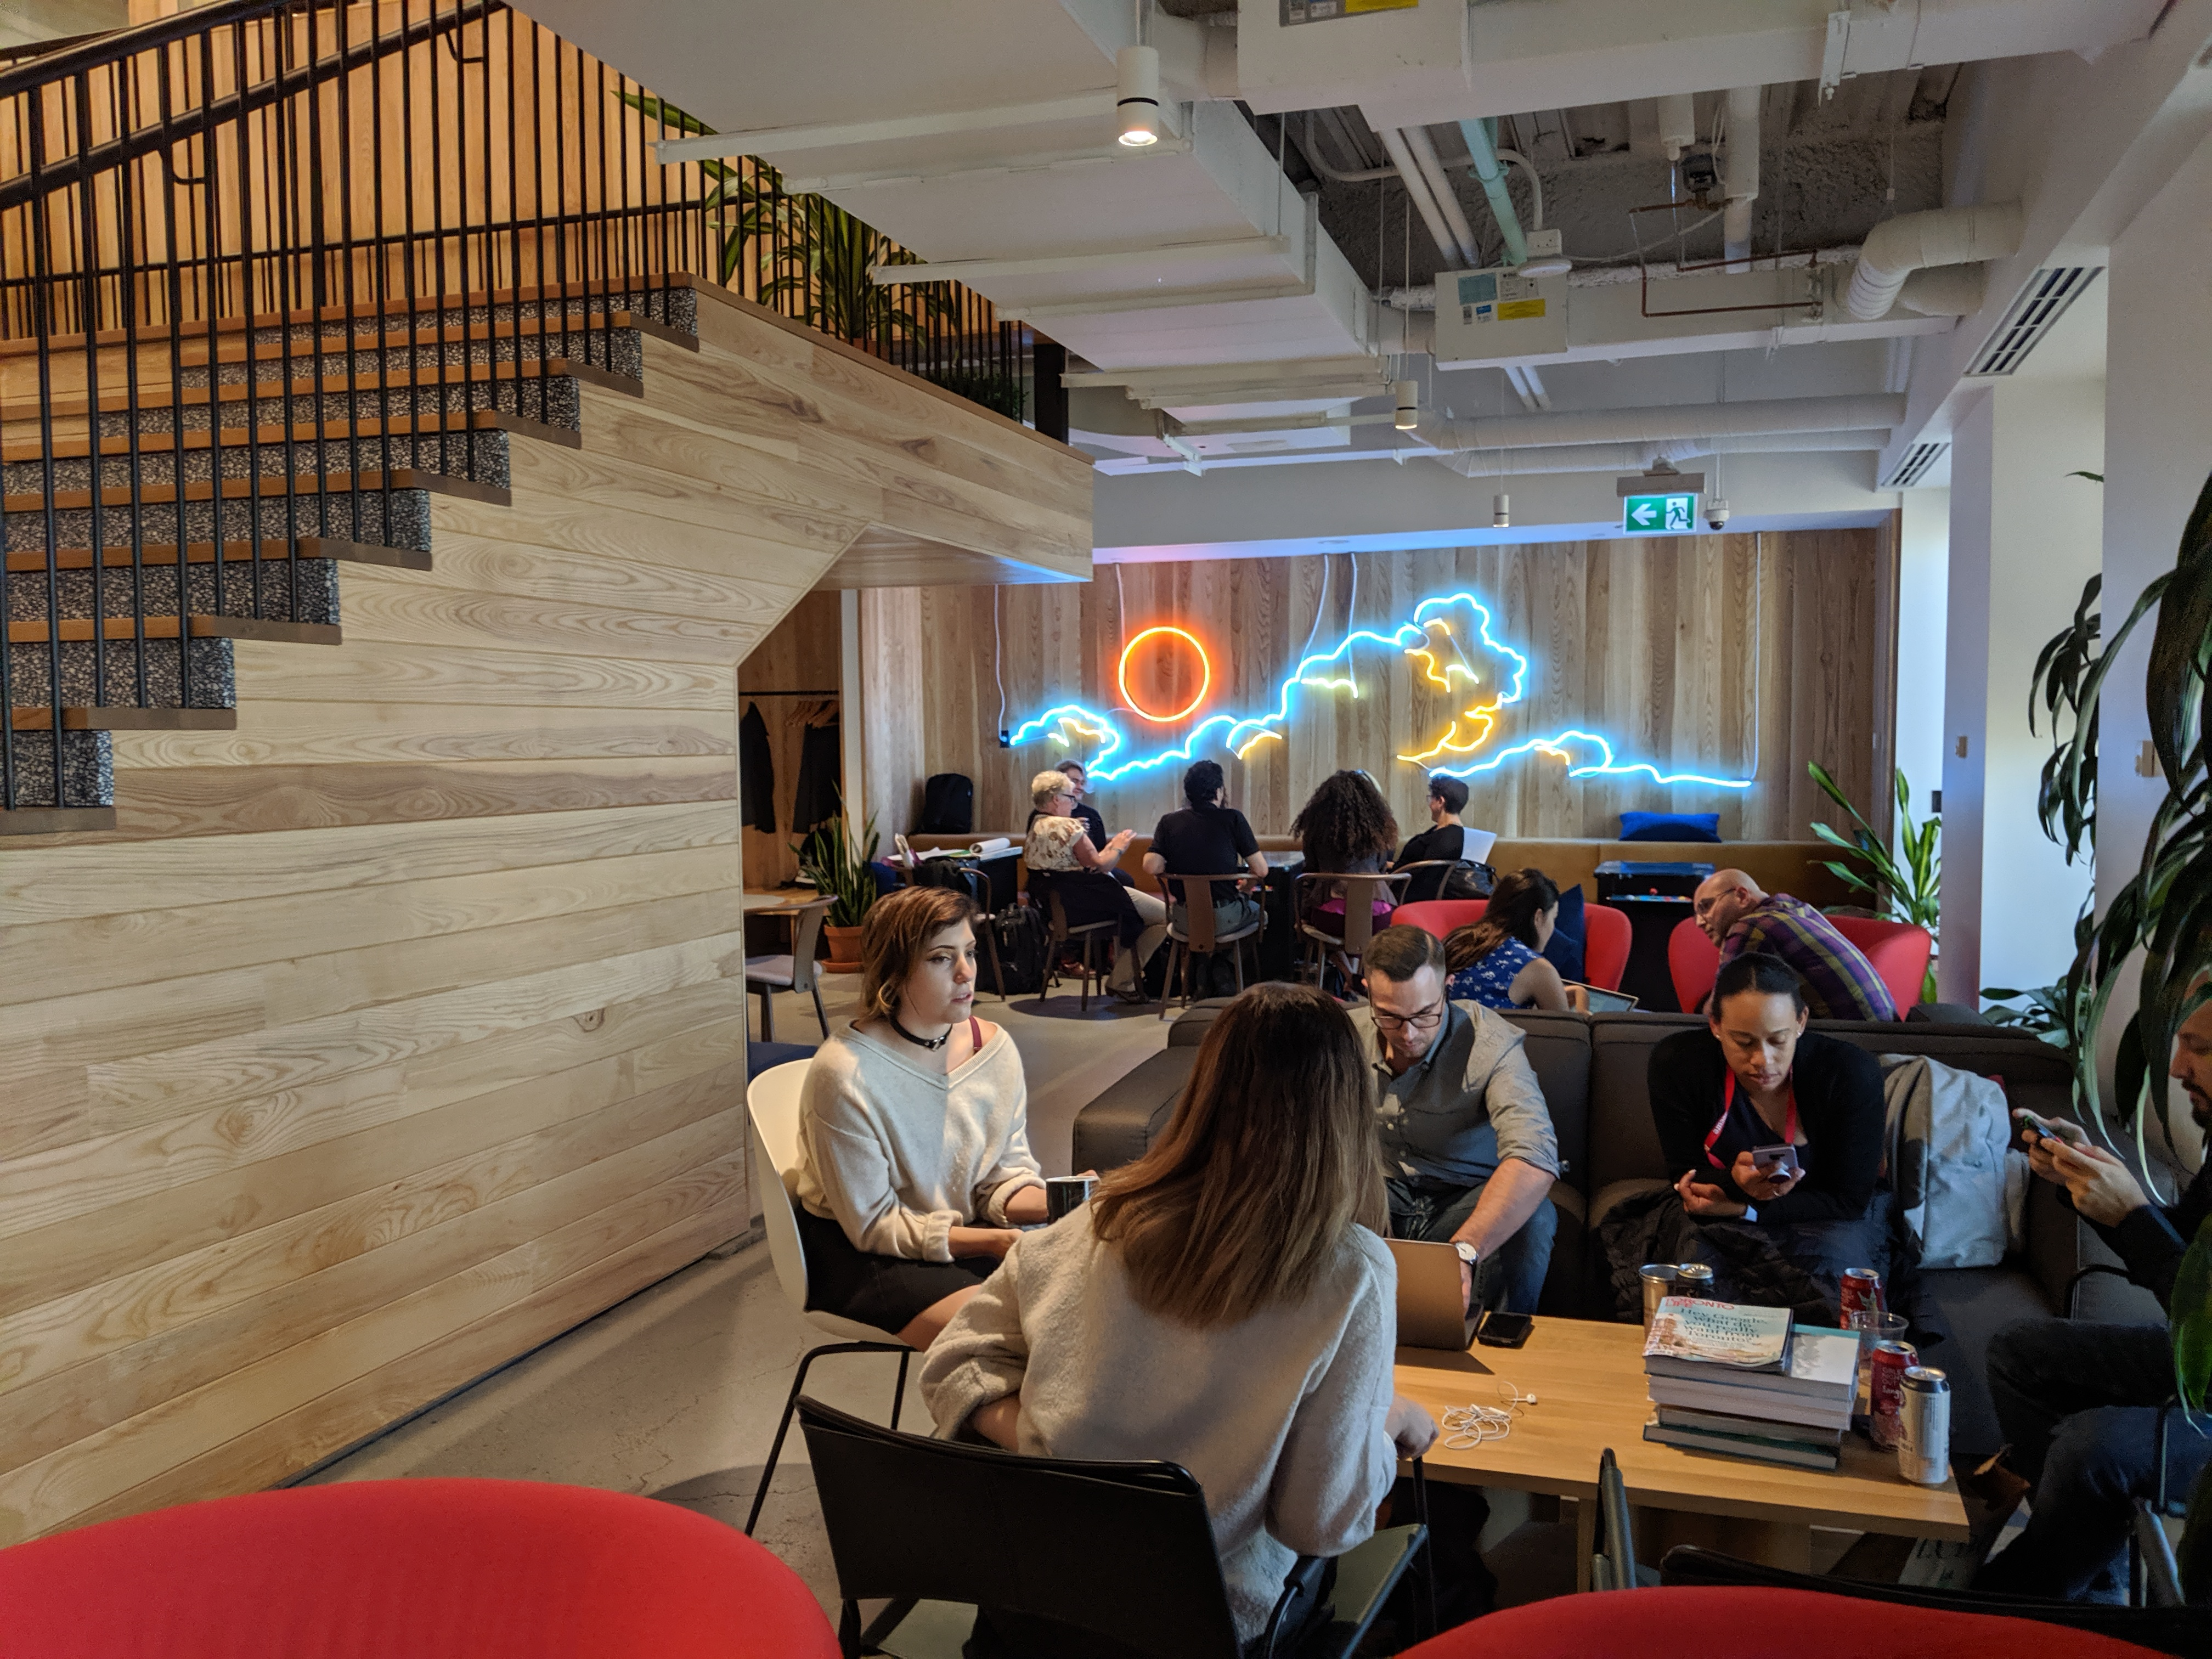 WeWork, other co-working spaces spreading rapidly in Canada